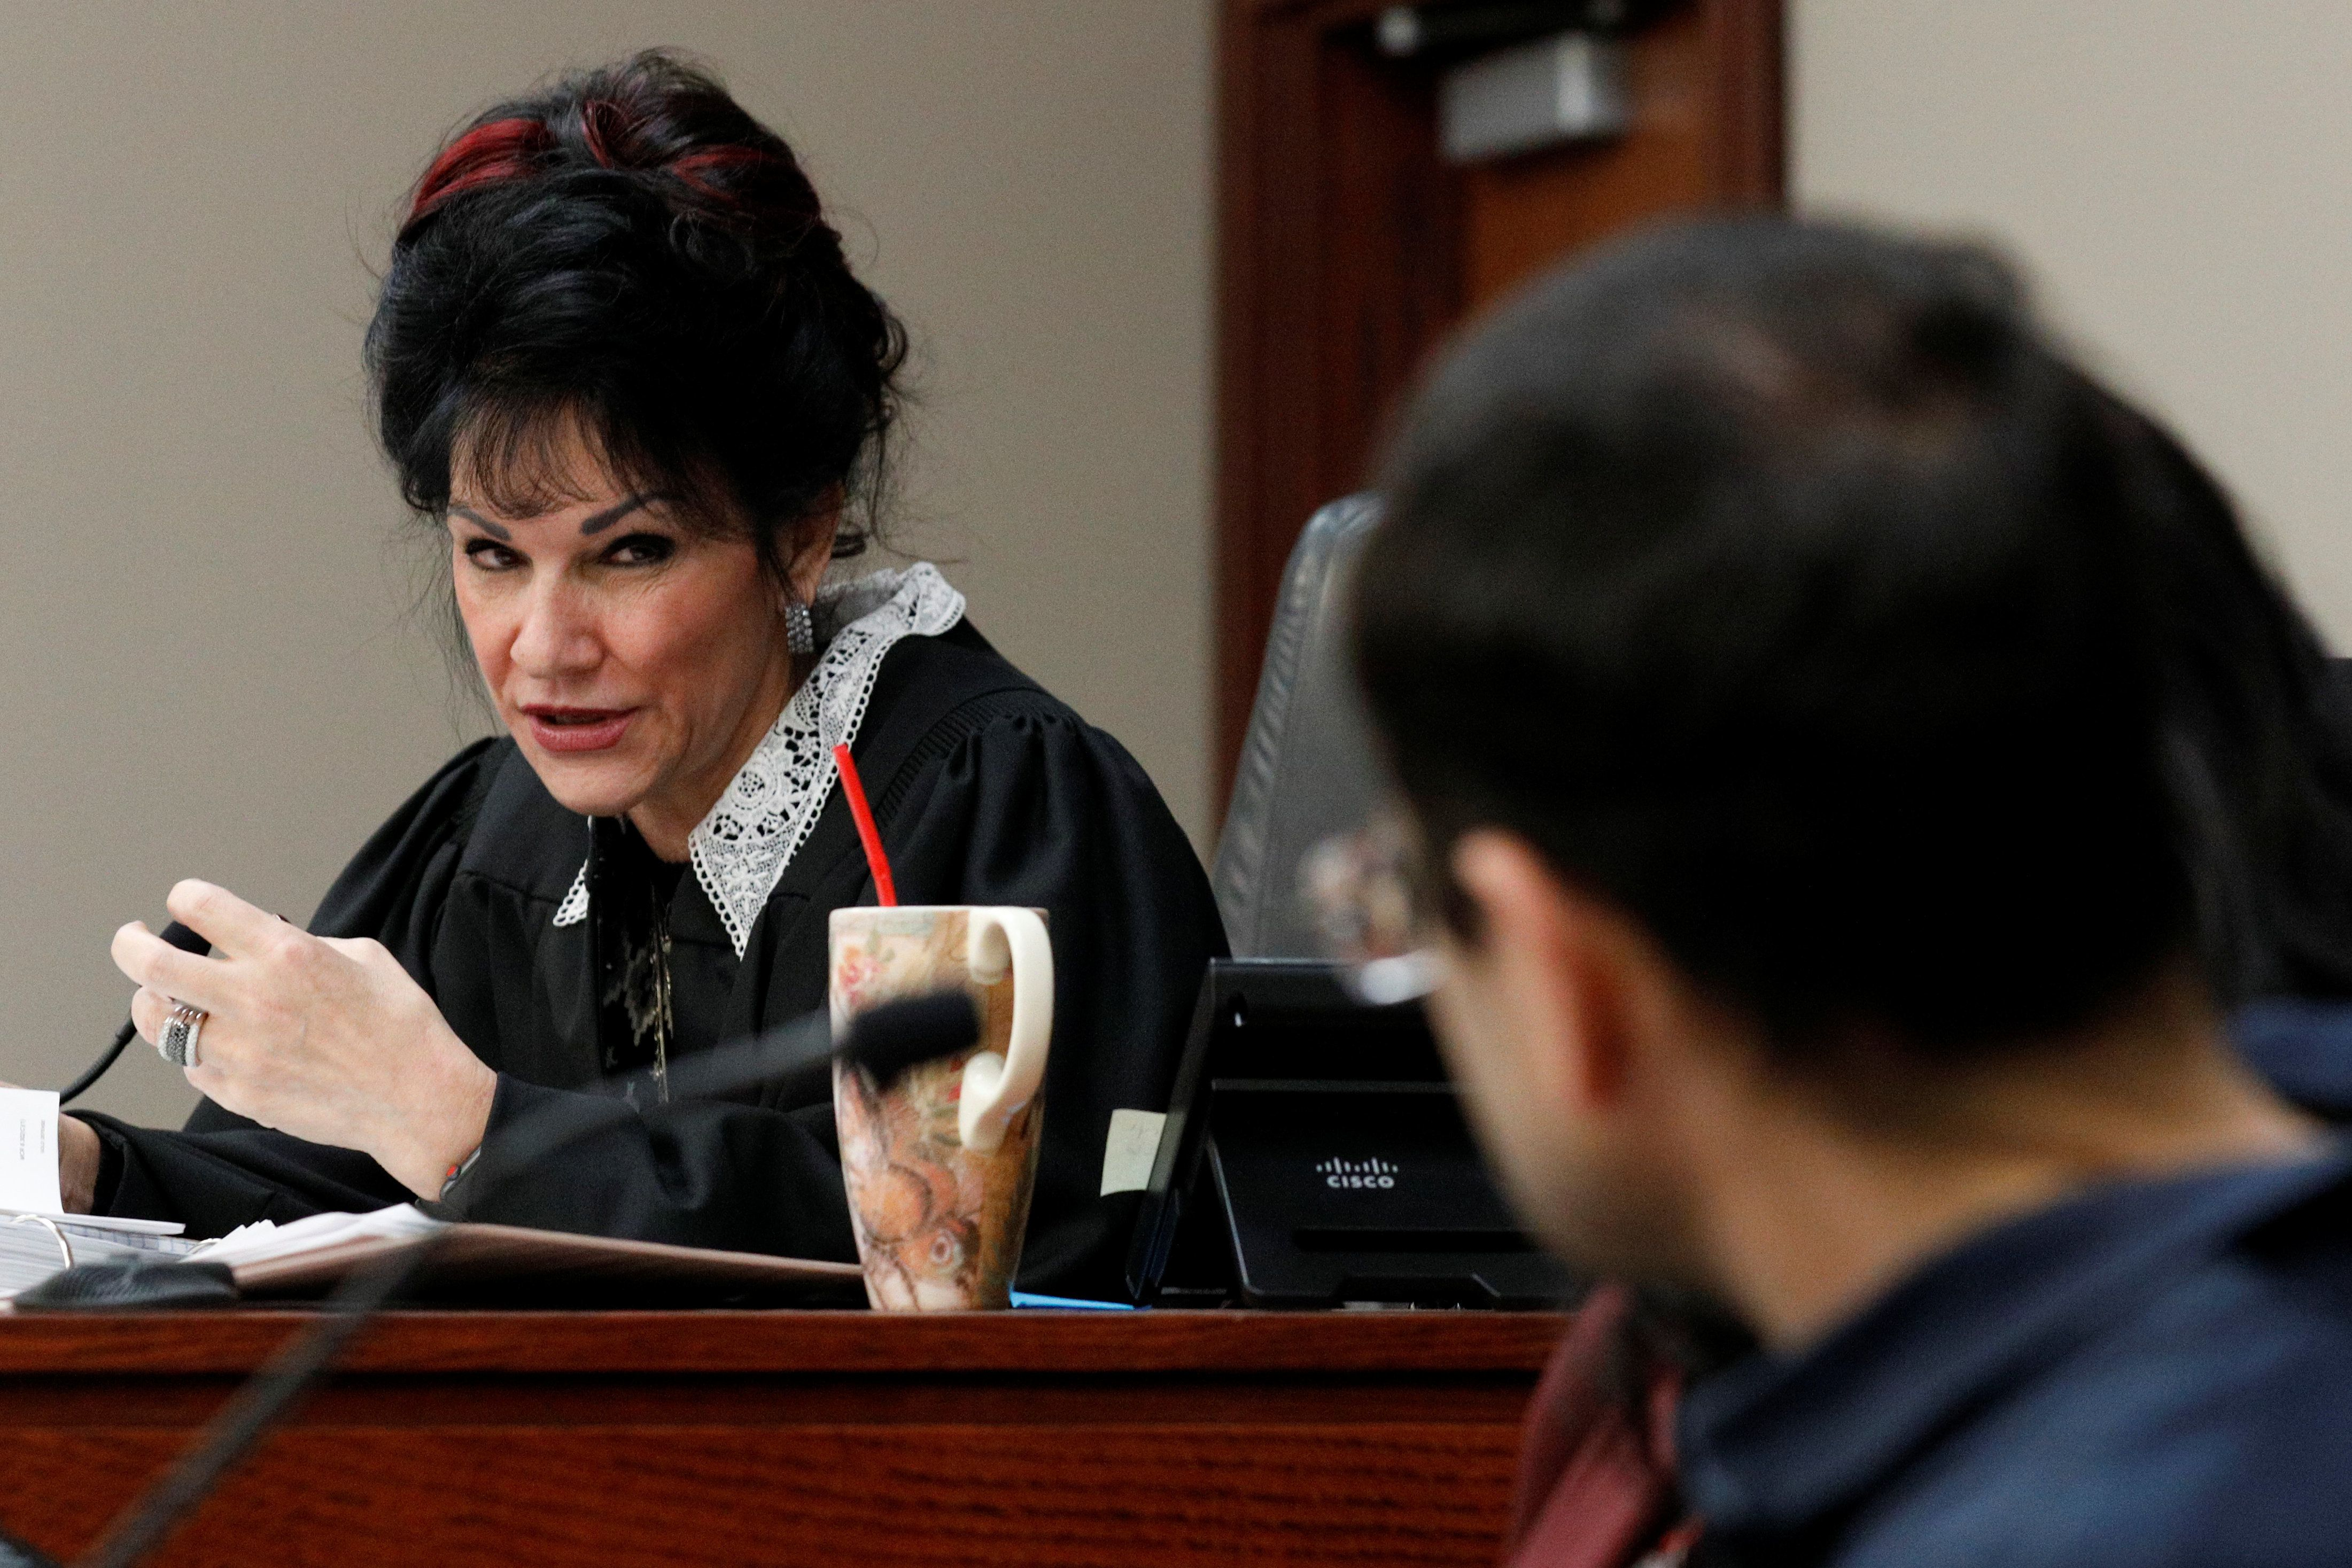 Circuit Court Judge Rosemarie Aquilina addresses Larry Nassar, (R) a former team USA Gymnastics doctor who pleaded guilty in November 2017 to sexual assault charges, during his sentencing hearing in Lansing, Michigan, U.S., January 18, 2018. REUTERS/Brendan McDermid